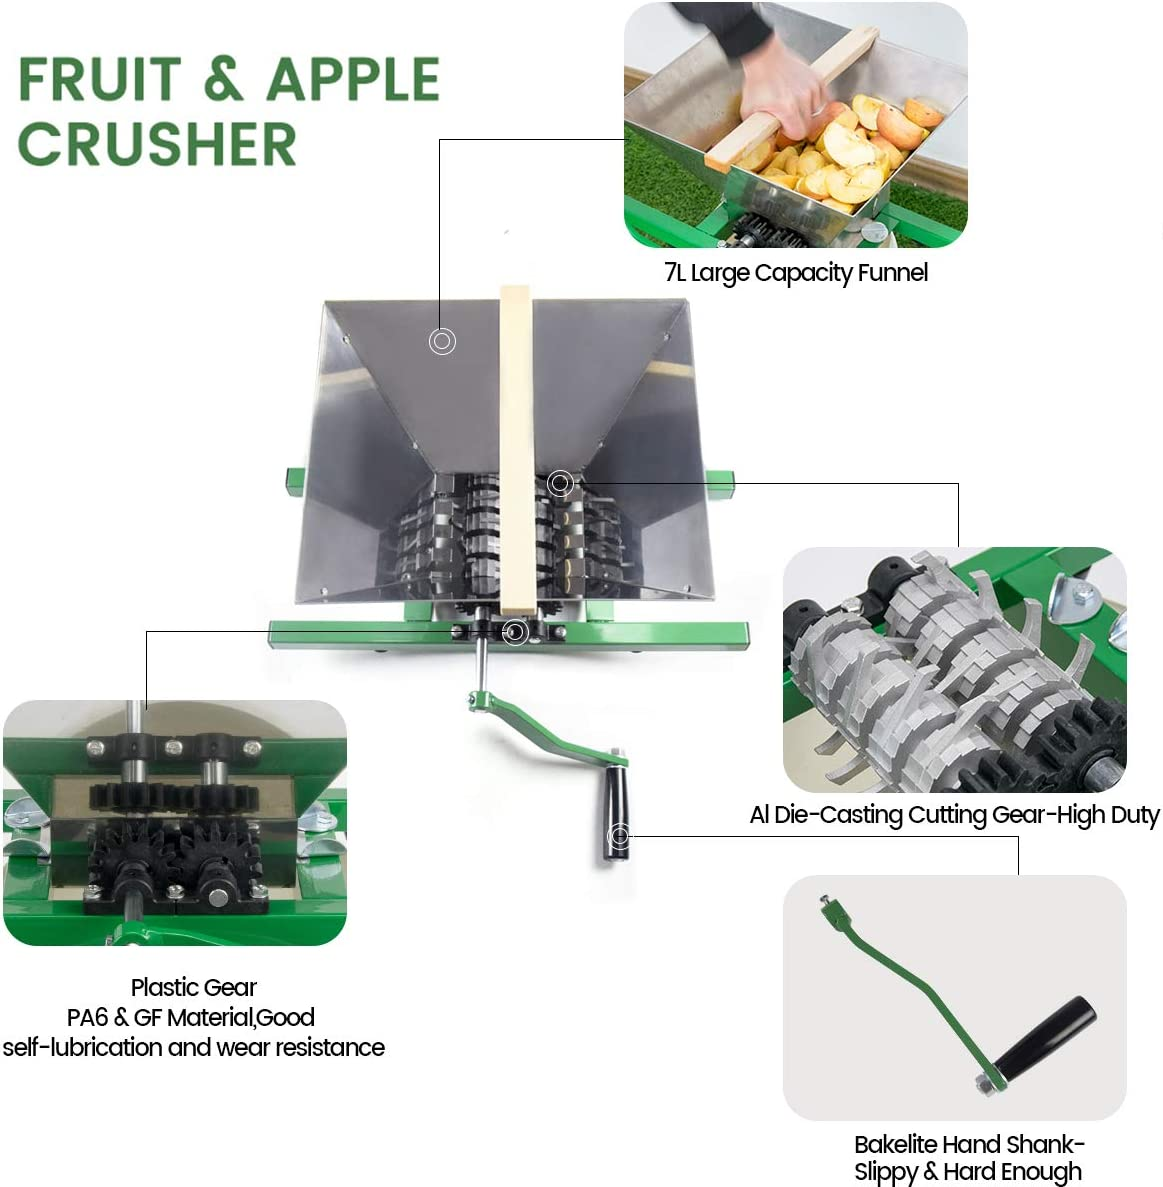 Stainless Steel,1.8 Gallon,Red Fruit and Apple Crusher 7L Manual Juicer Grinder,Portable Fruit Scratter Pulper for Wine and Cider Pressing